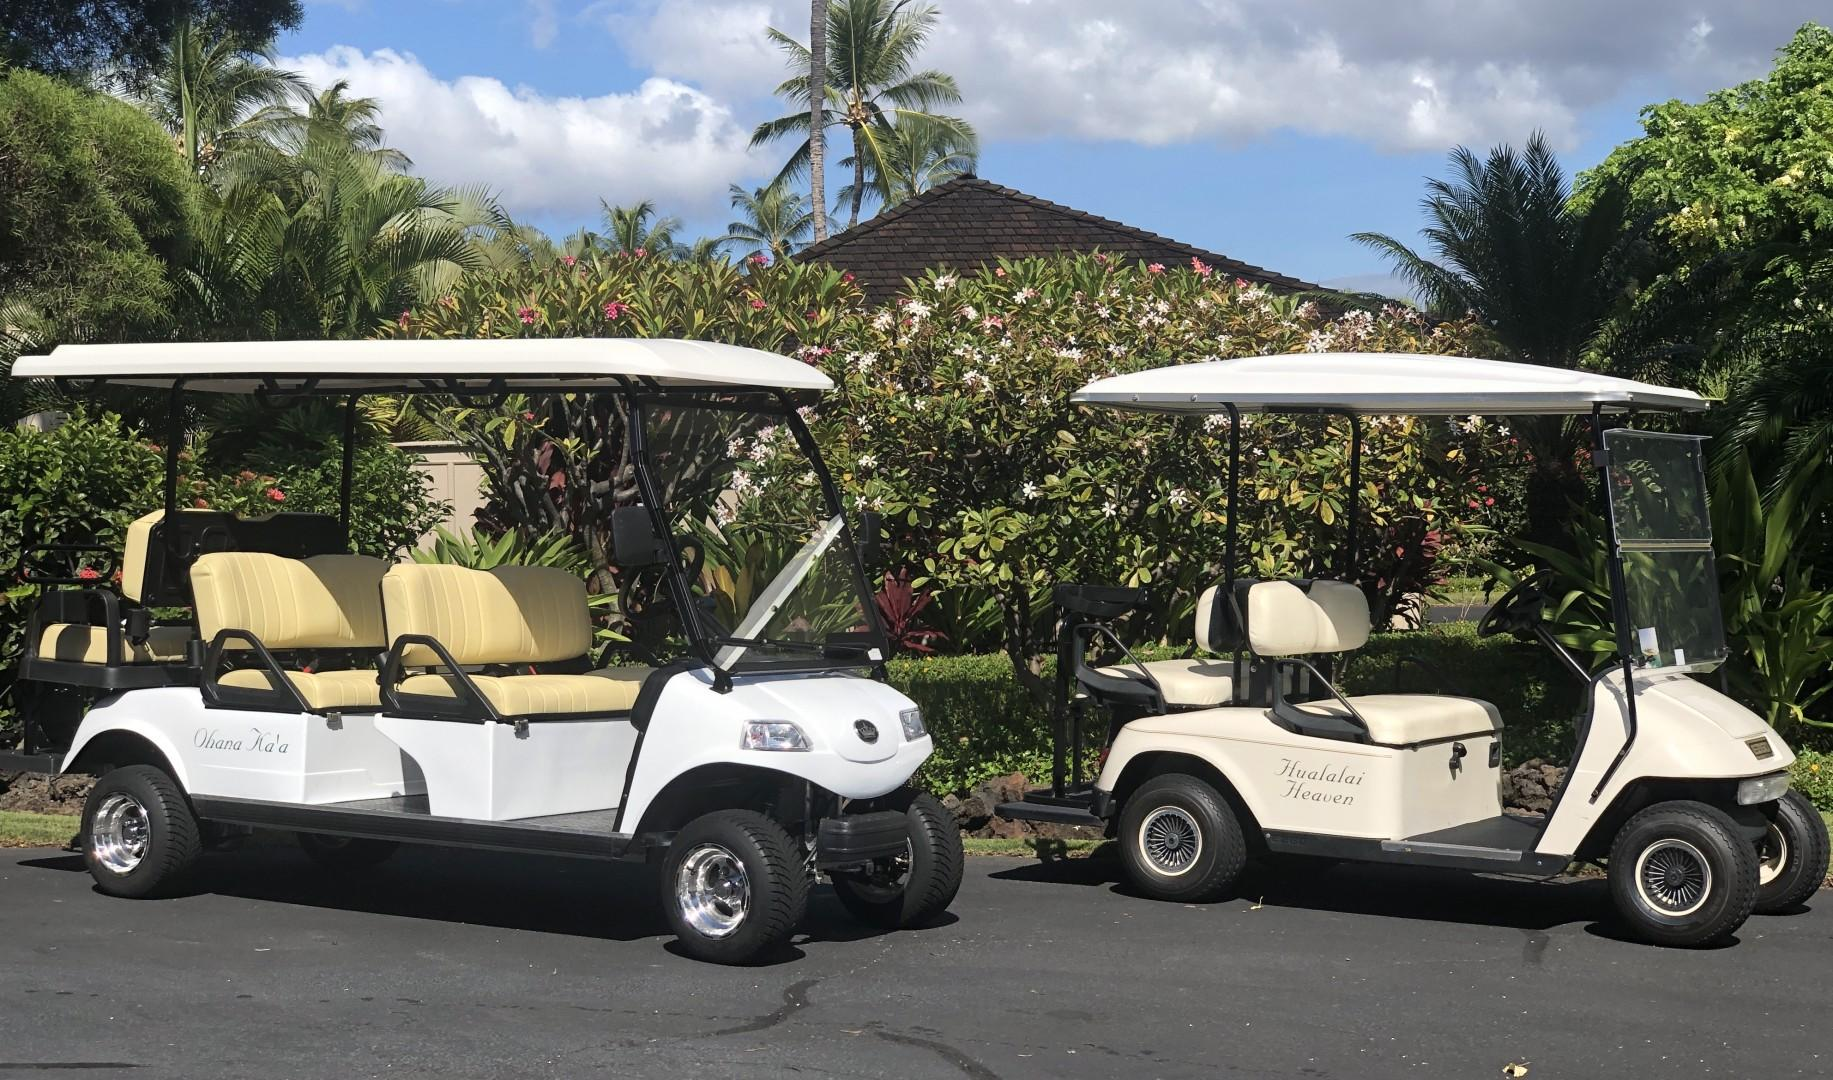 This rental comes with TWO golf carts! One four-seater and one six-seater golf cart.